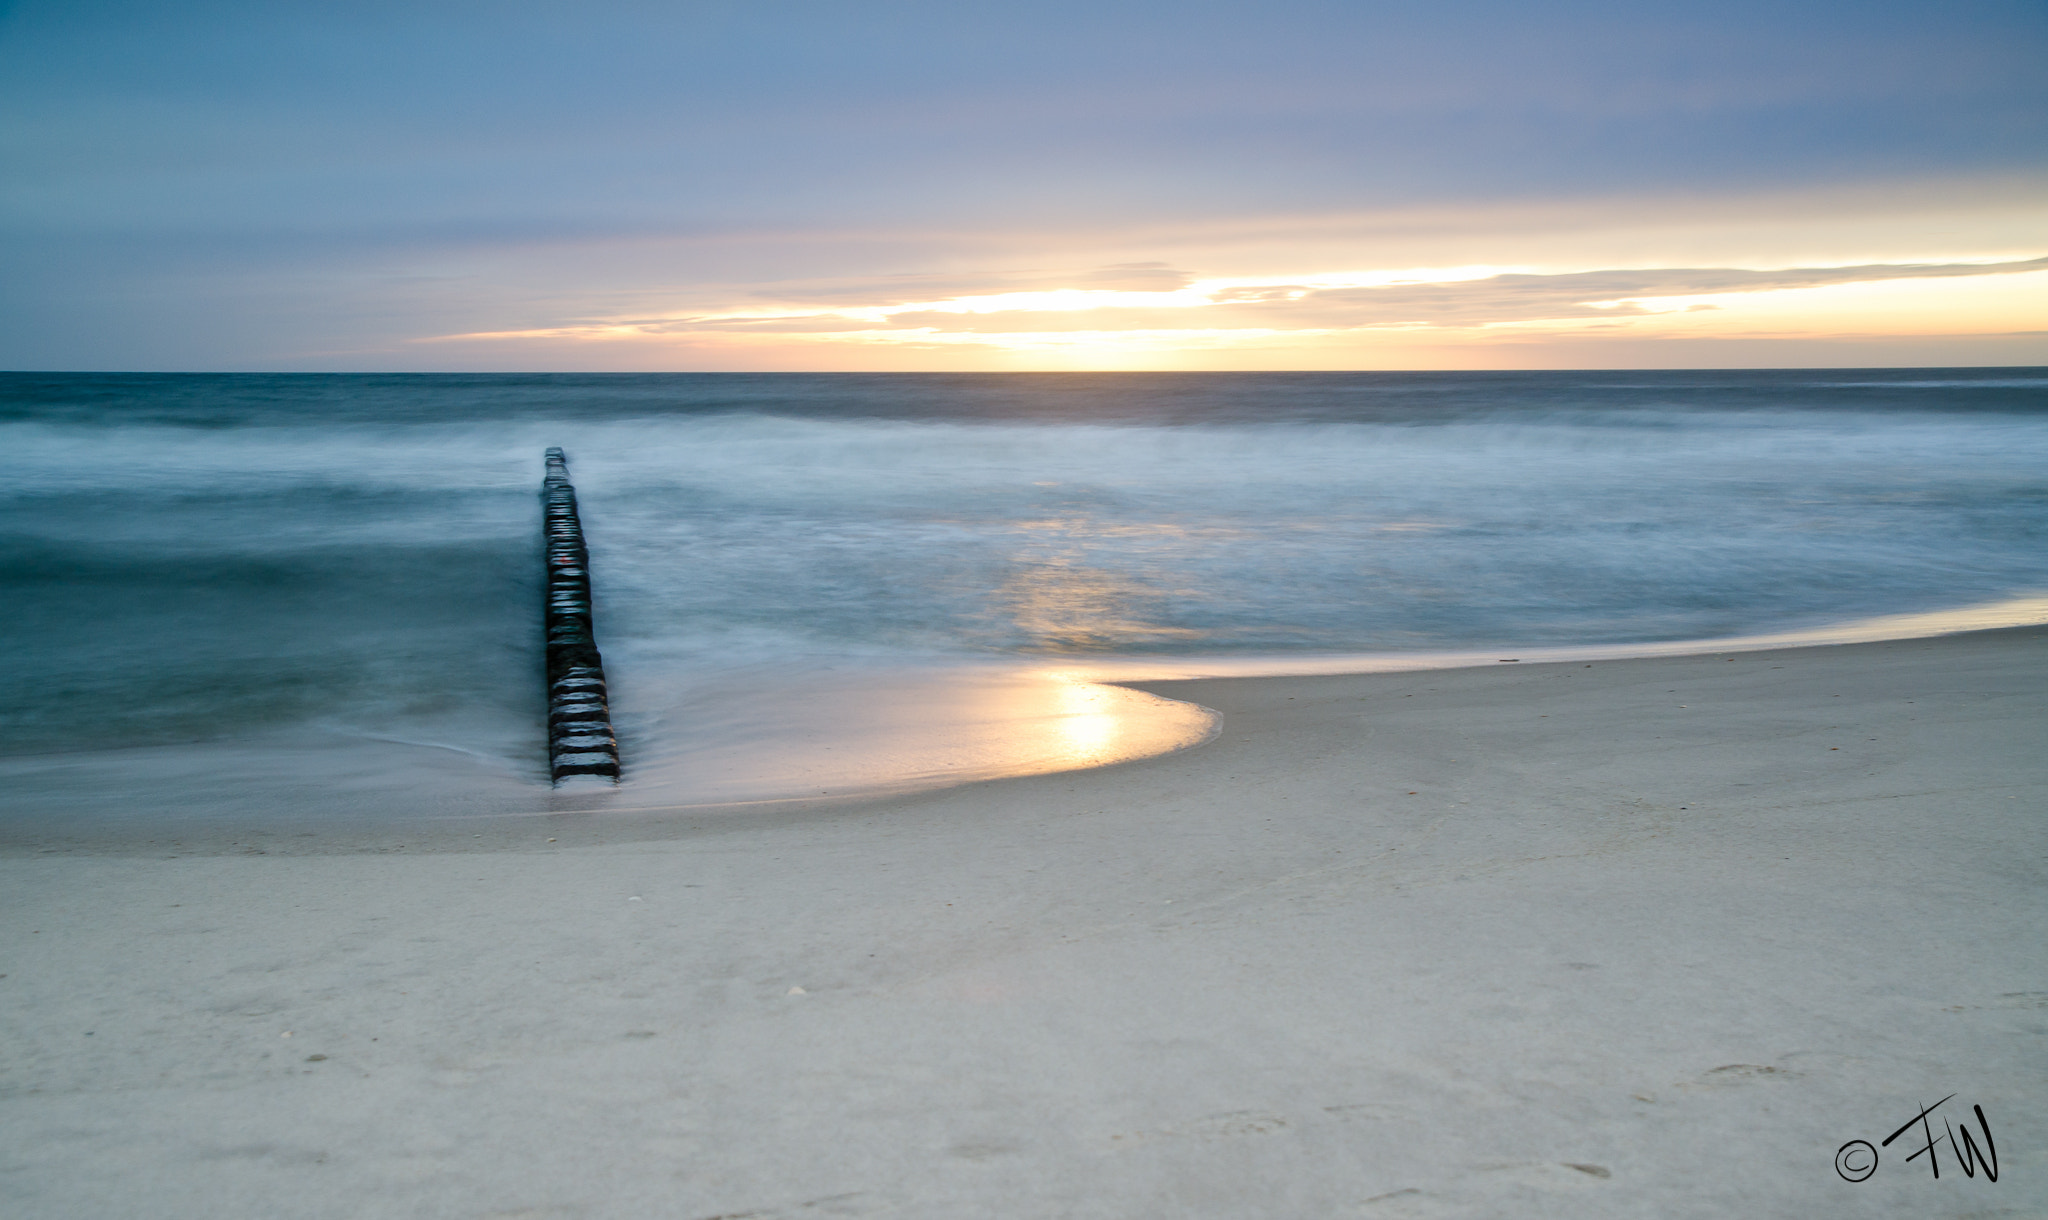 Photograph Sylt I by Florian Weber on 500px